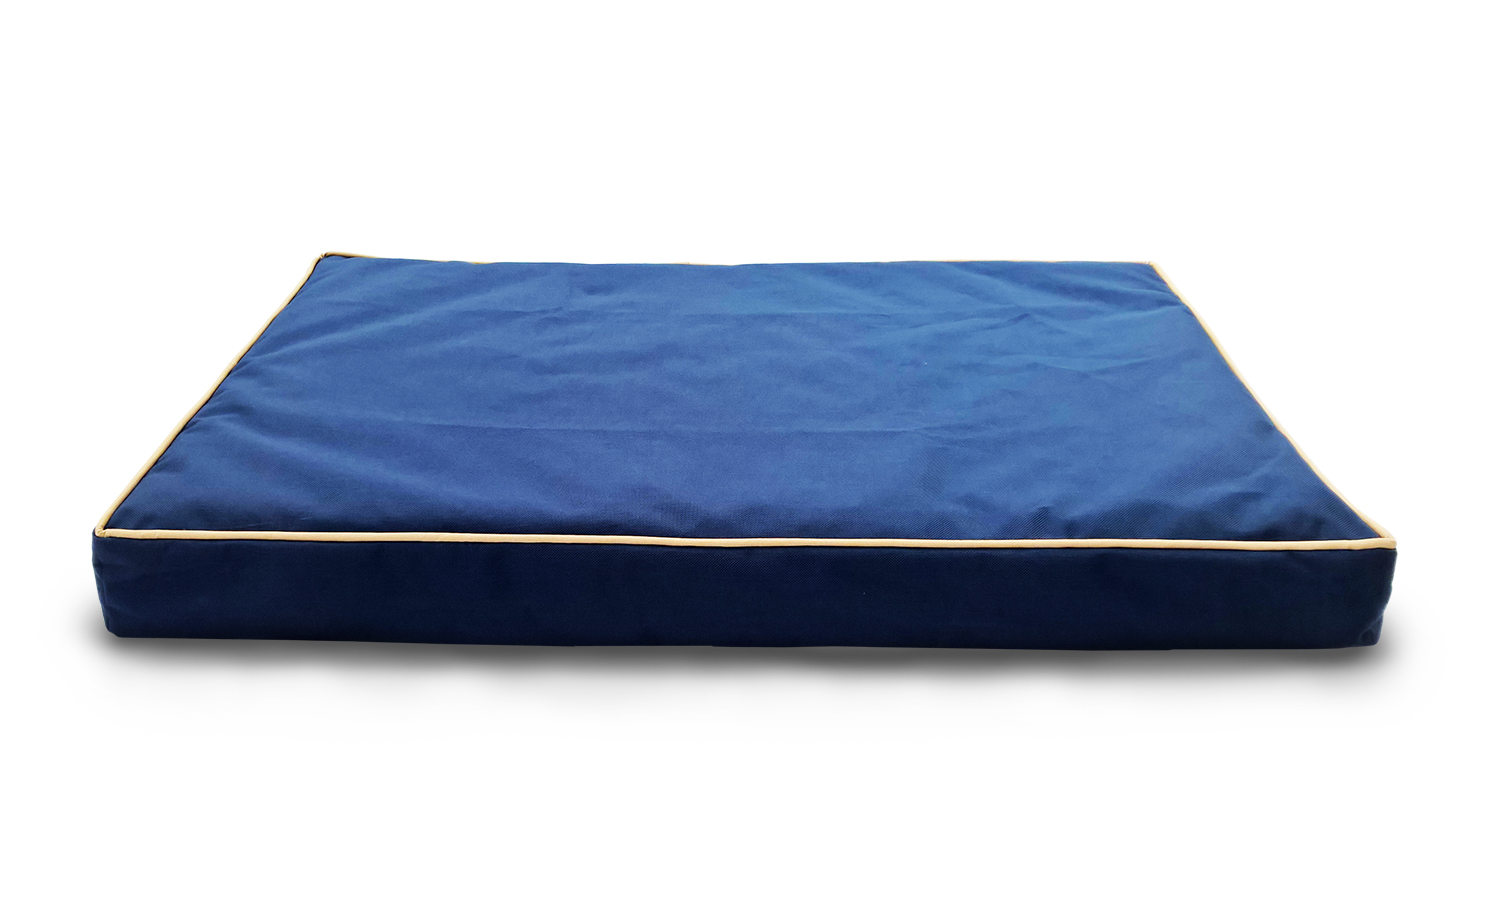 FurHaven Deluxe Orthopedic Mattress Pet Bed for Dogs and Cats Blue         Orthopedic Pet Bed  Picture 2 of 4